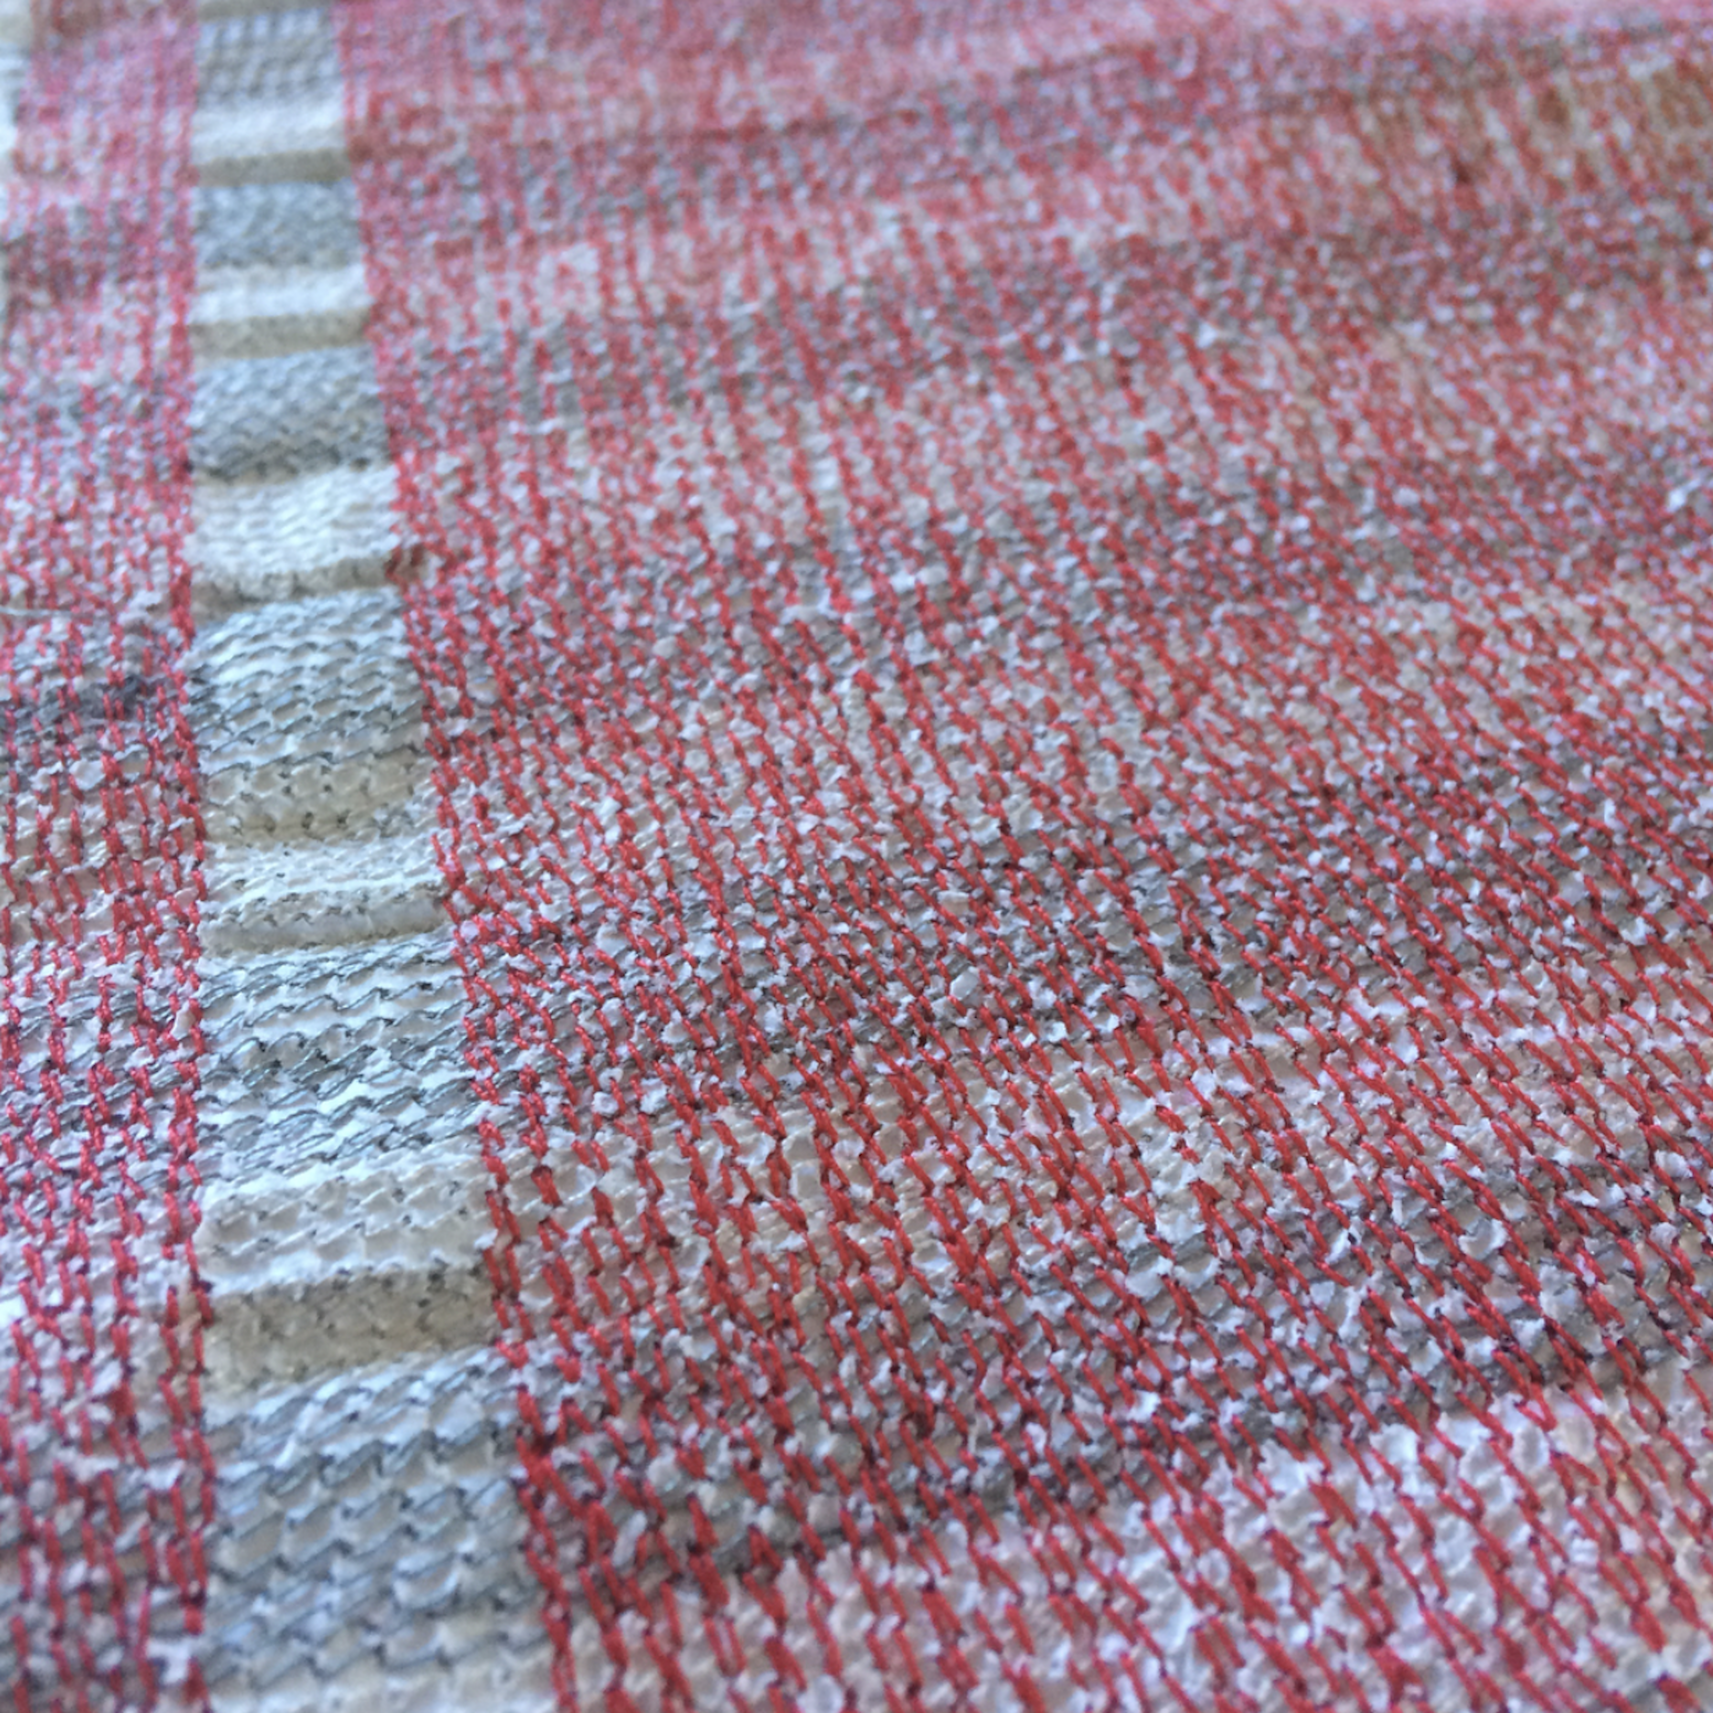 """This is a close-up of the piece I'm currently working on for exhibit in April this year. It involves stitching rows of thread into pages of the last edition of the """"Cambodia Daily"""" newspaper, which was deemed illegal by the government in September 2017 and is no longer in circulation. In pinning these pages together my intention is to create a wall hanging that serves to question the government's decision to disallow further publication of this newspaper."""